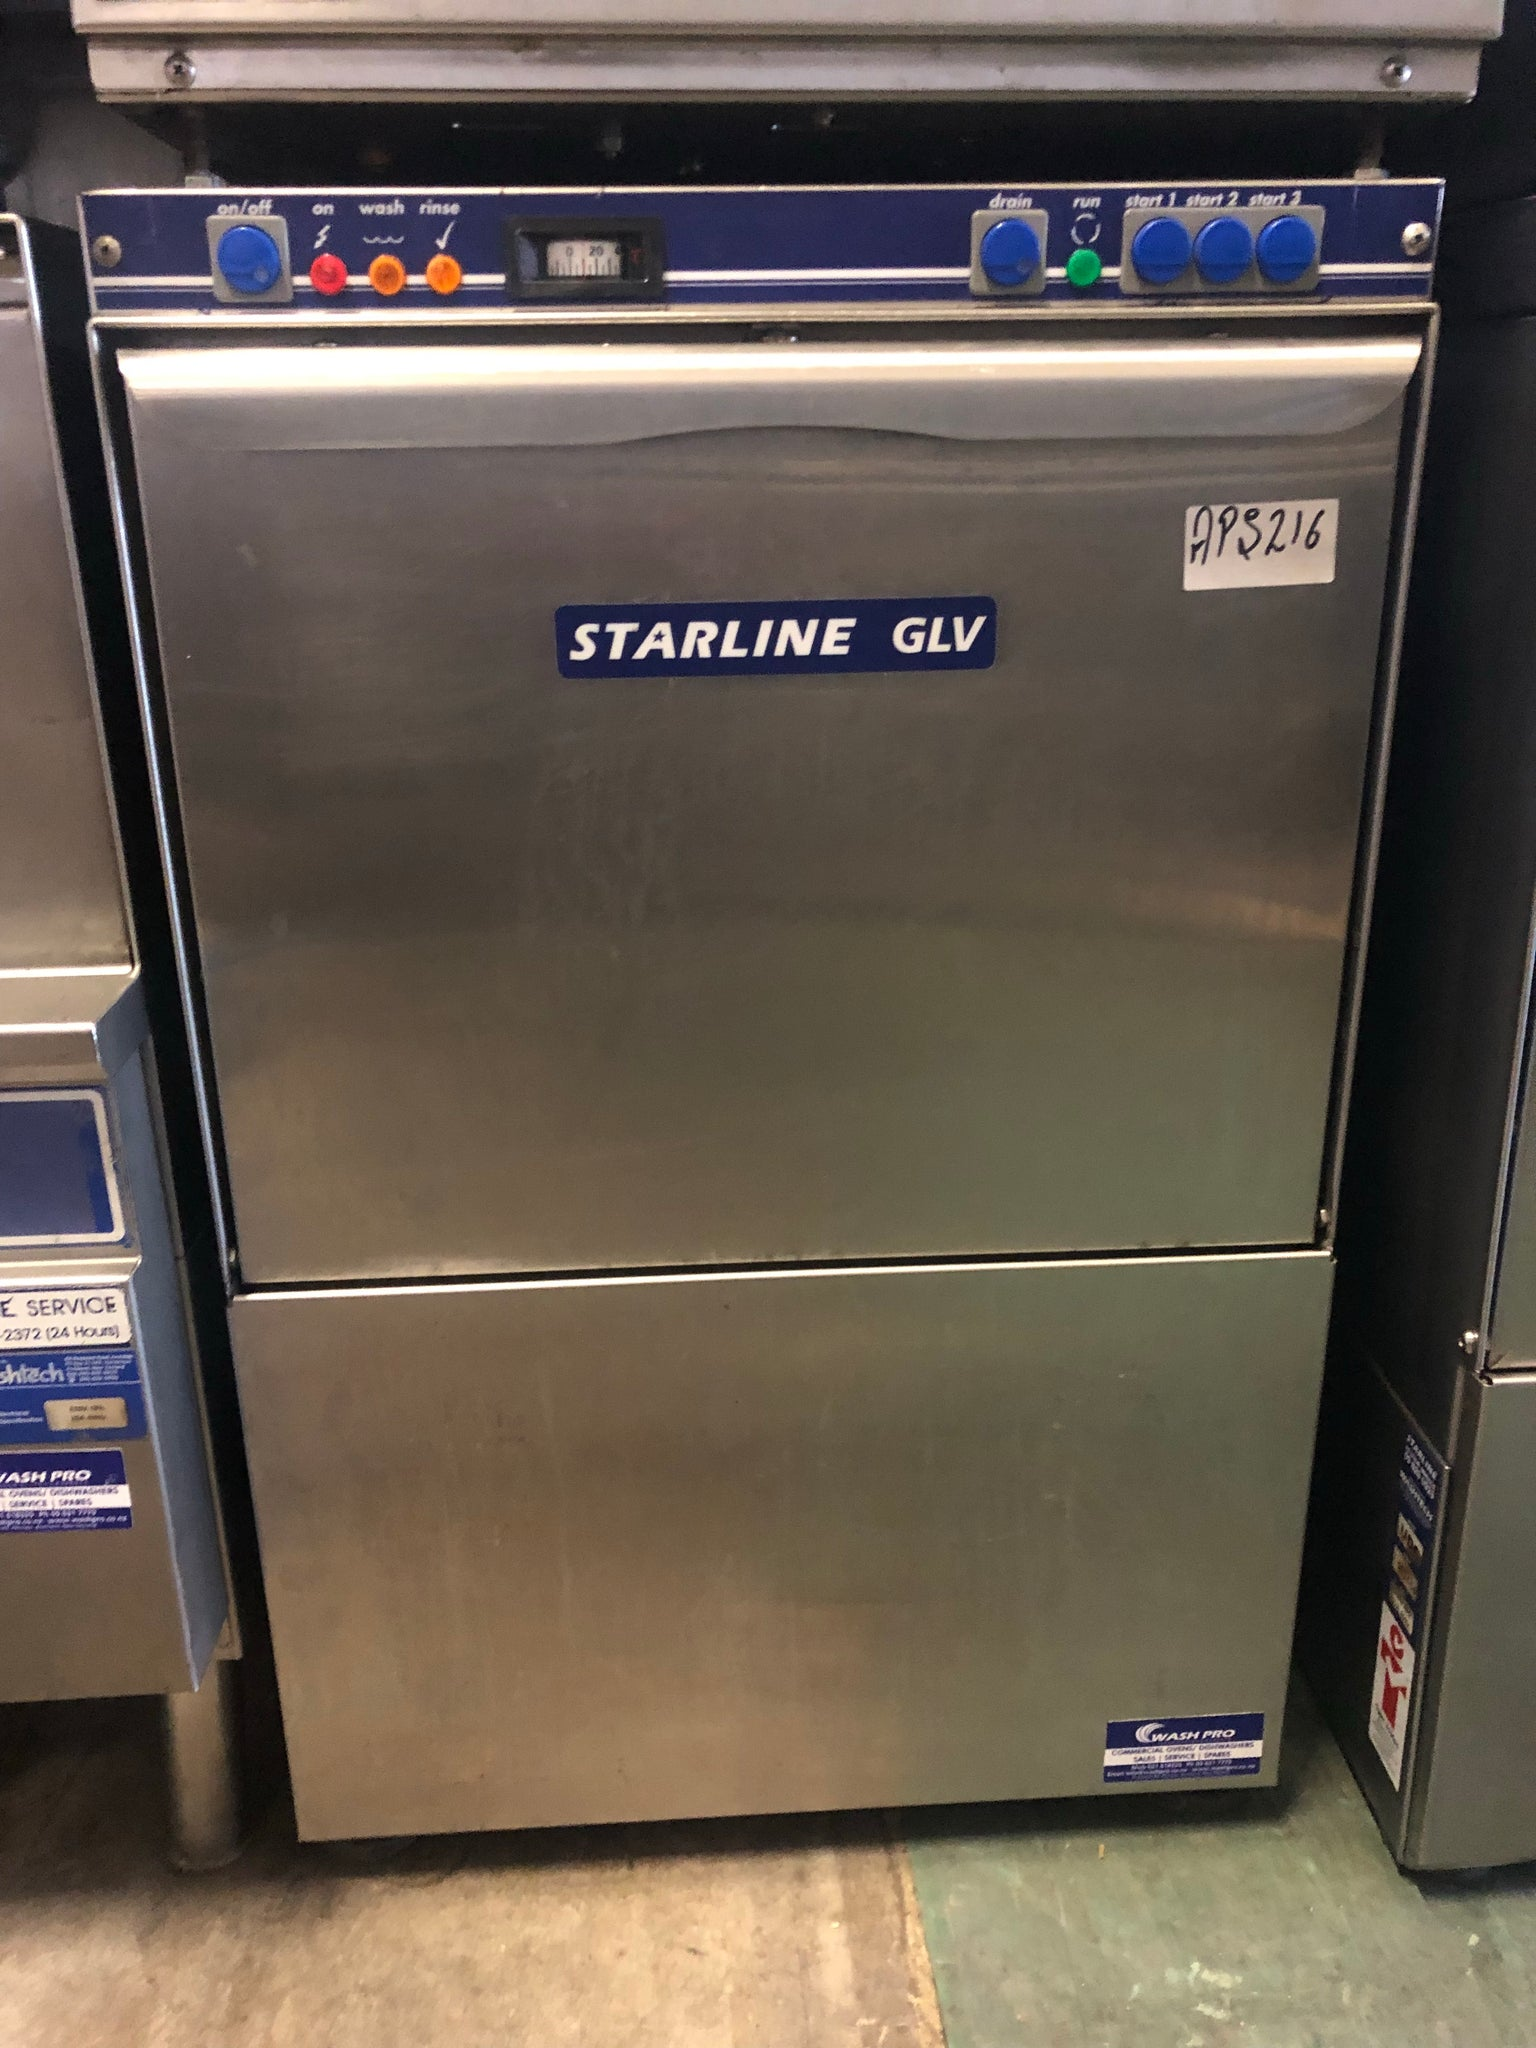 APS216 starline GLV Undercounter Commercial dishwasher with warranty free freight - Washpro